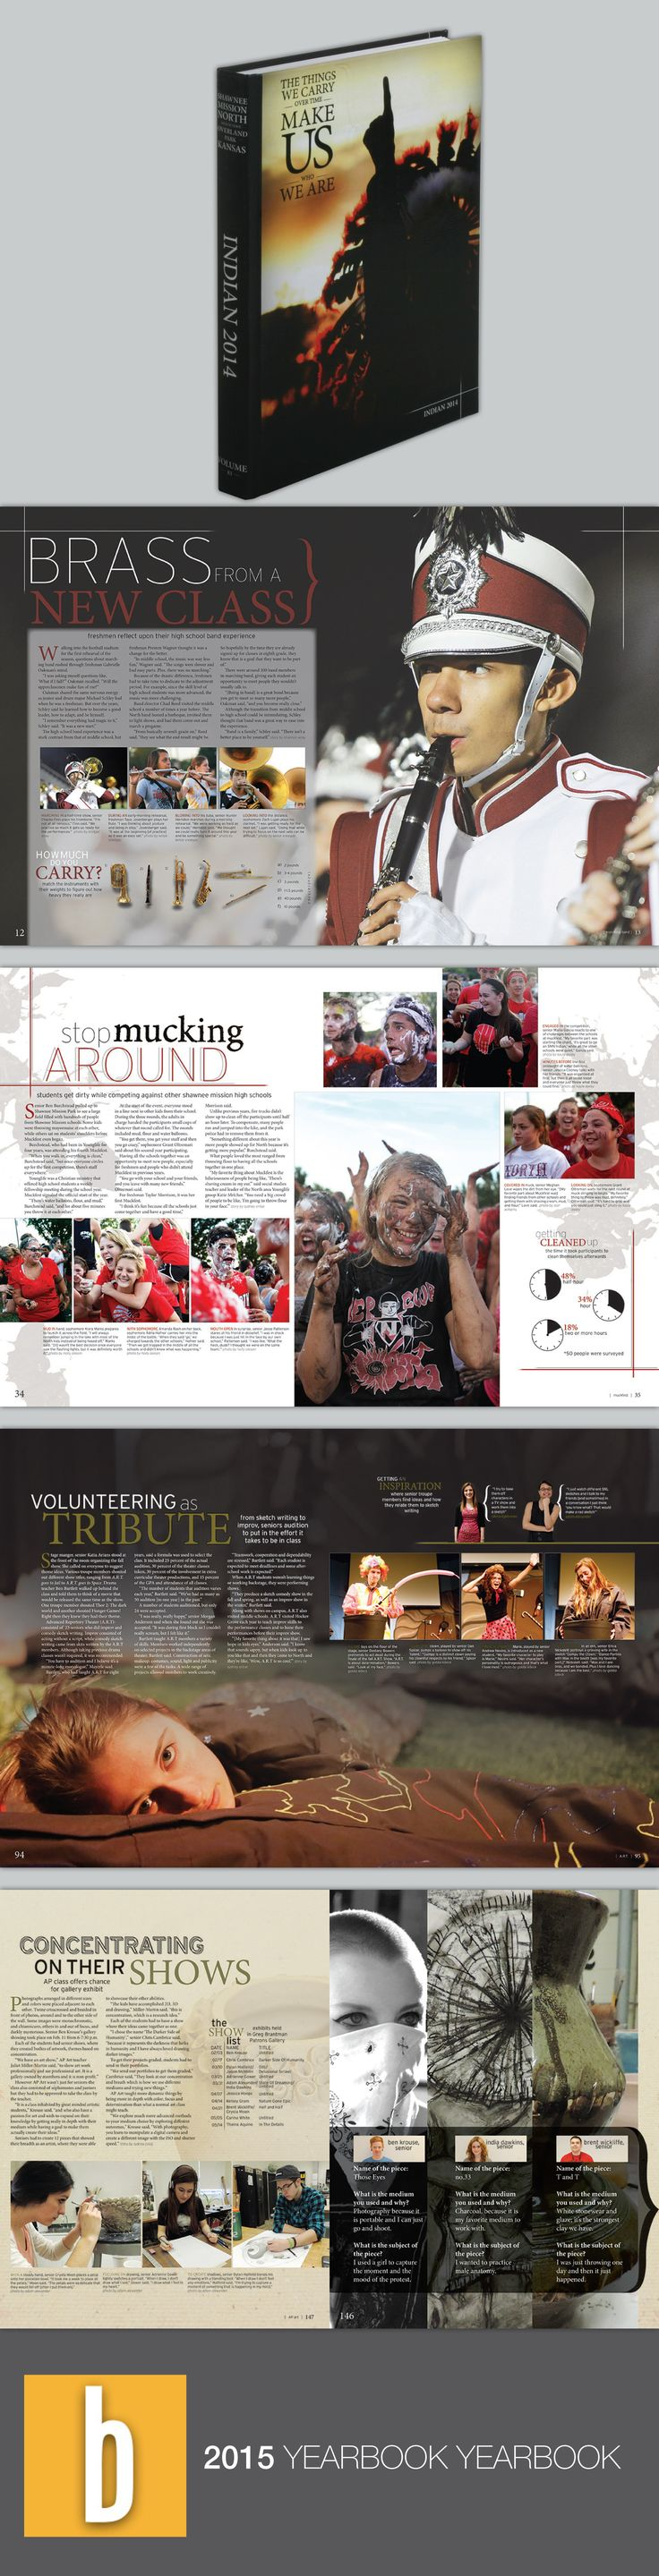 Best yearbook class images on pinterest yearbook class